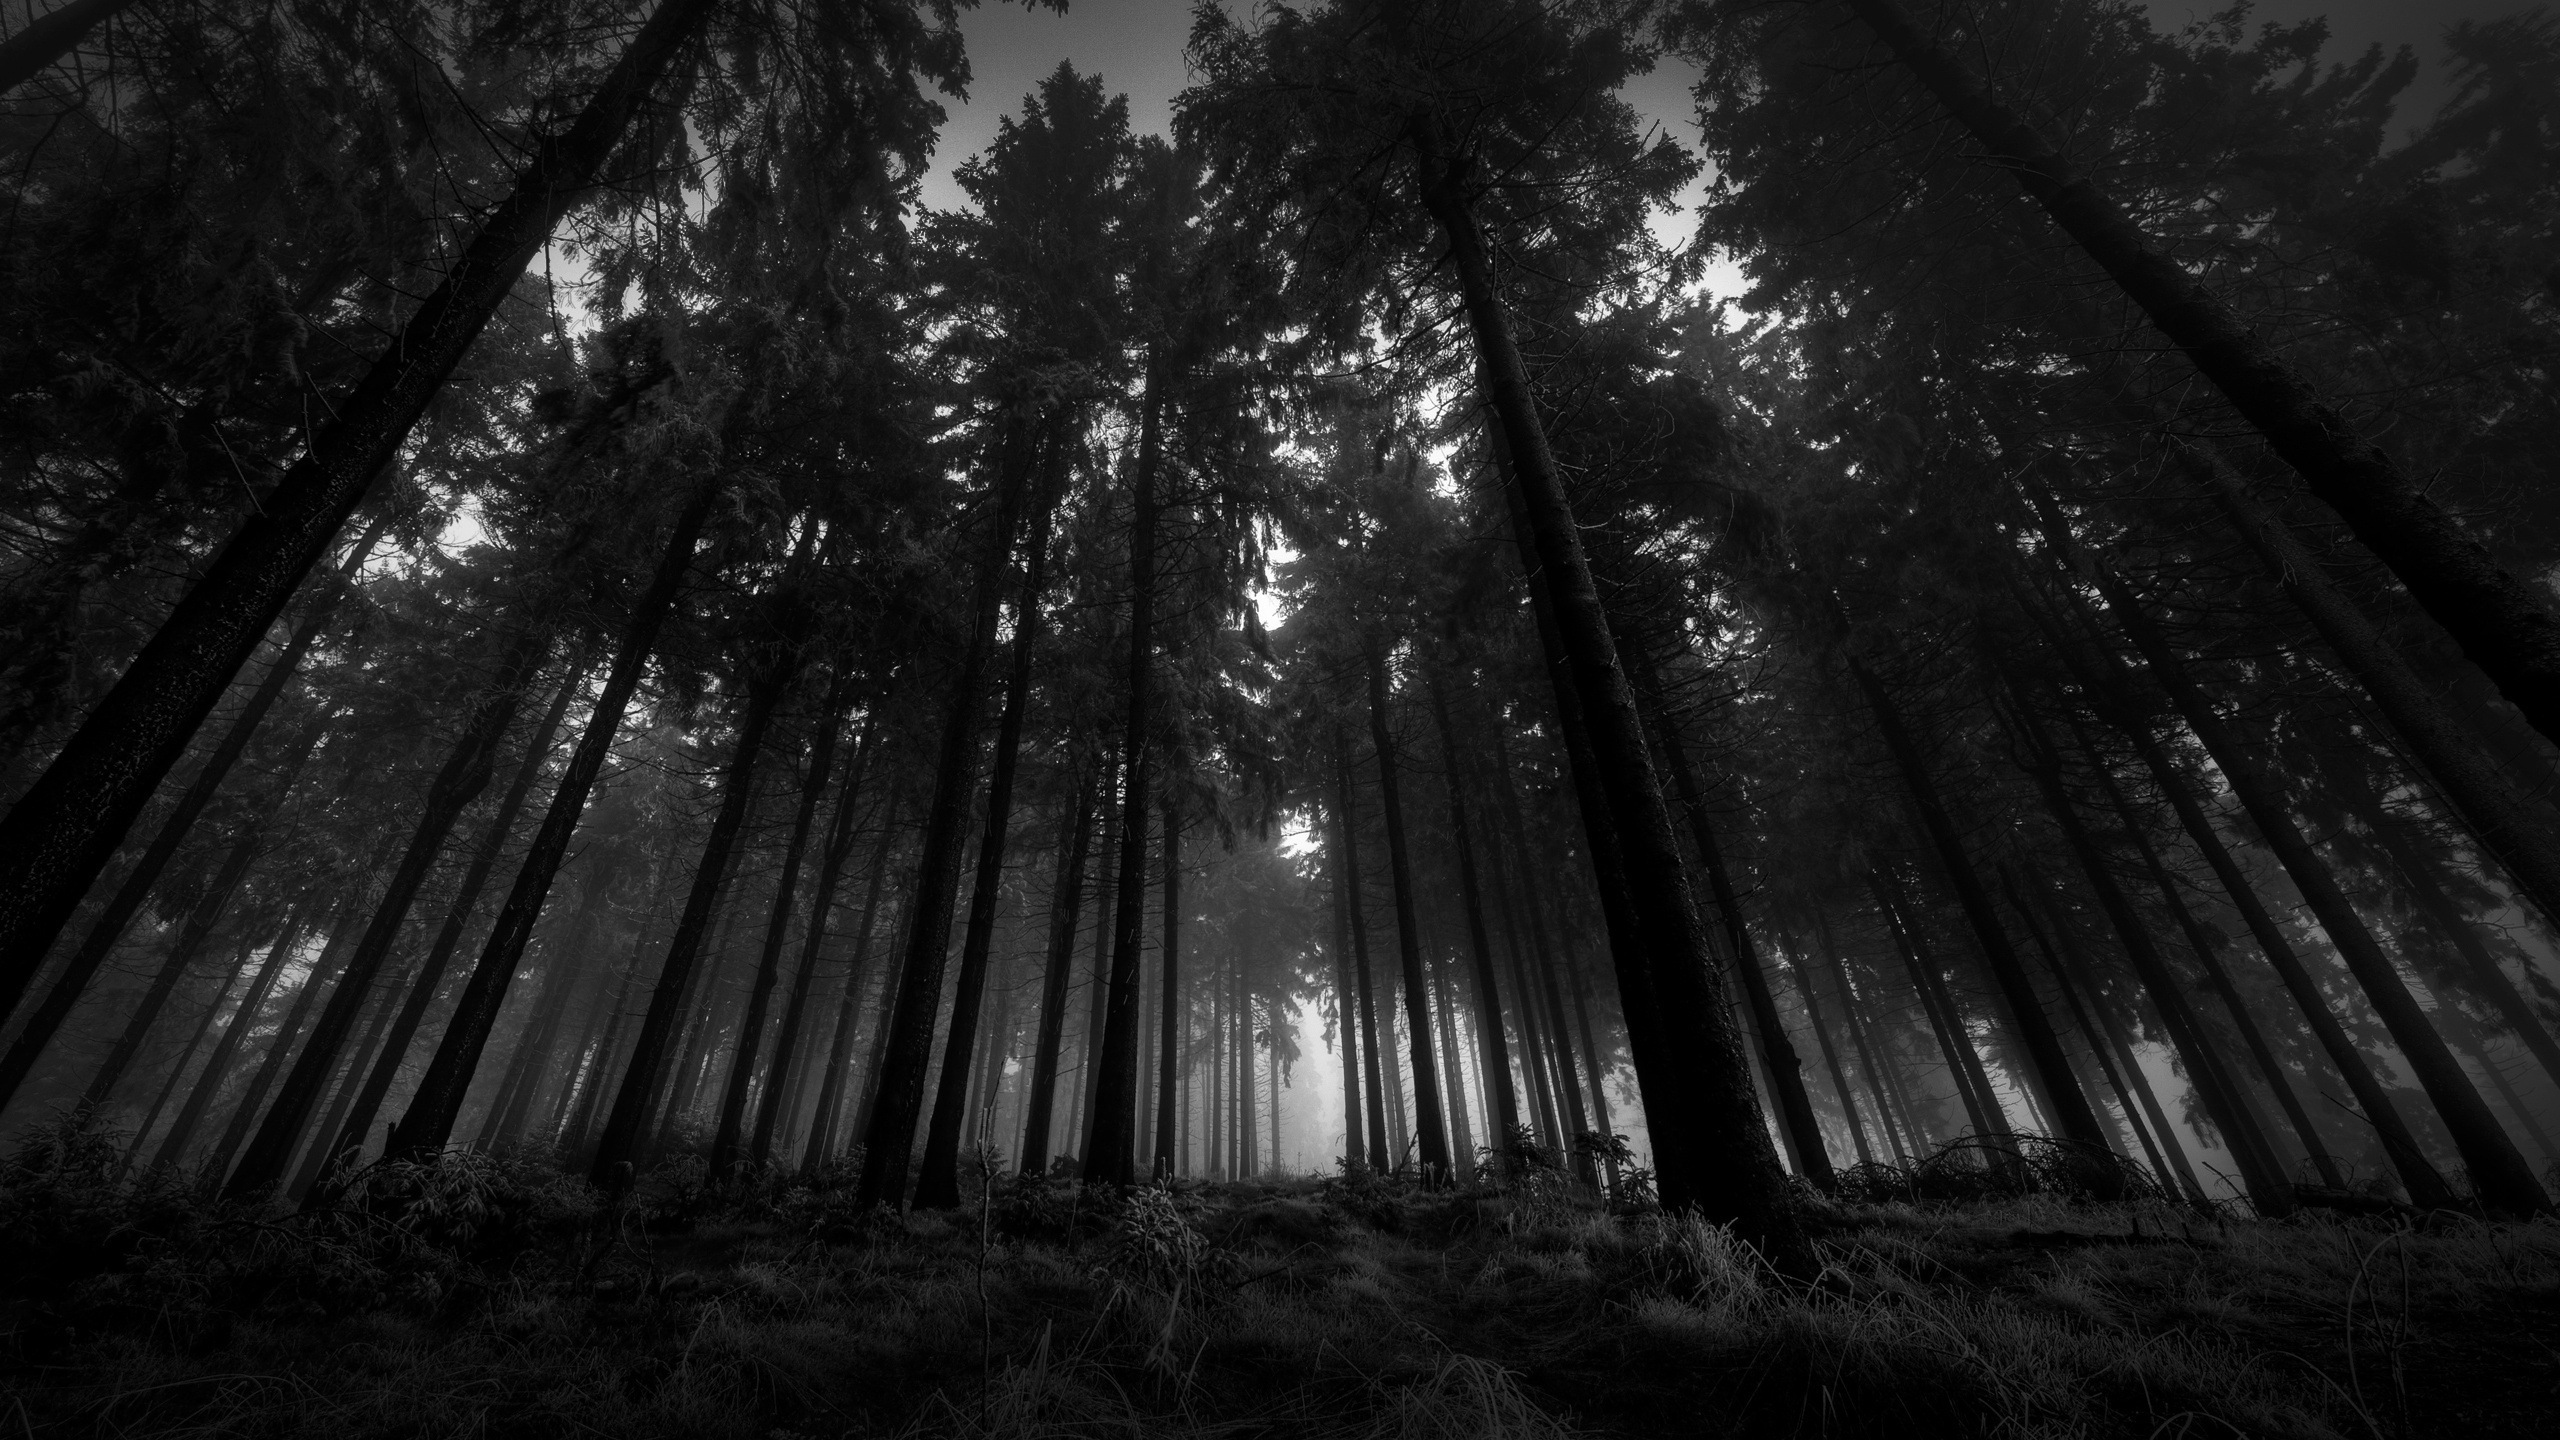 dark forest wallpapers for iphone free download > subwallpaper